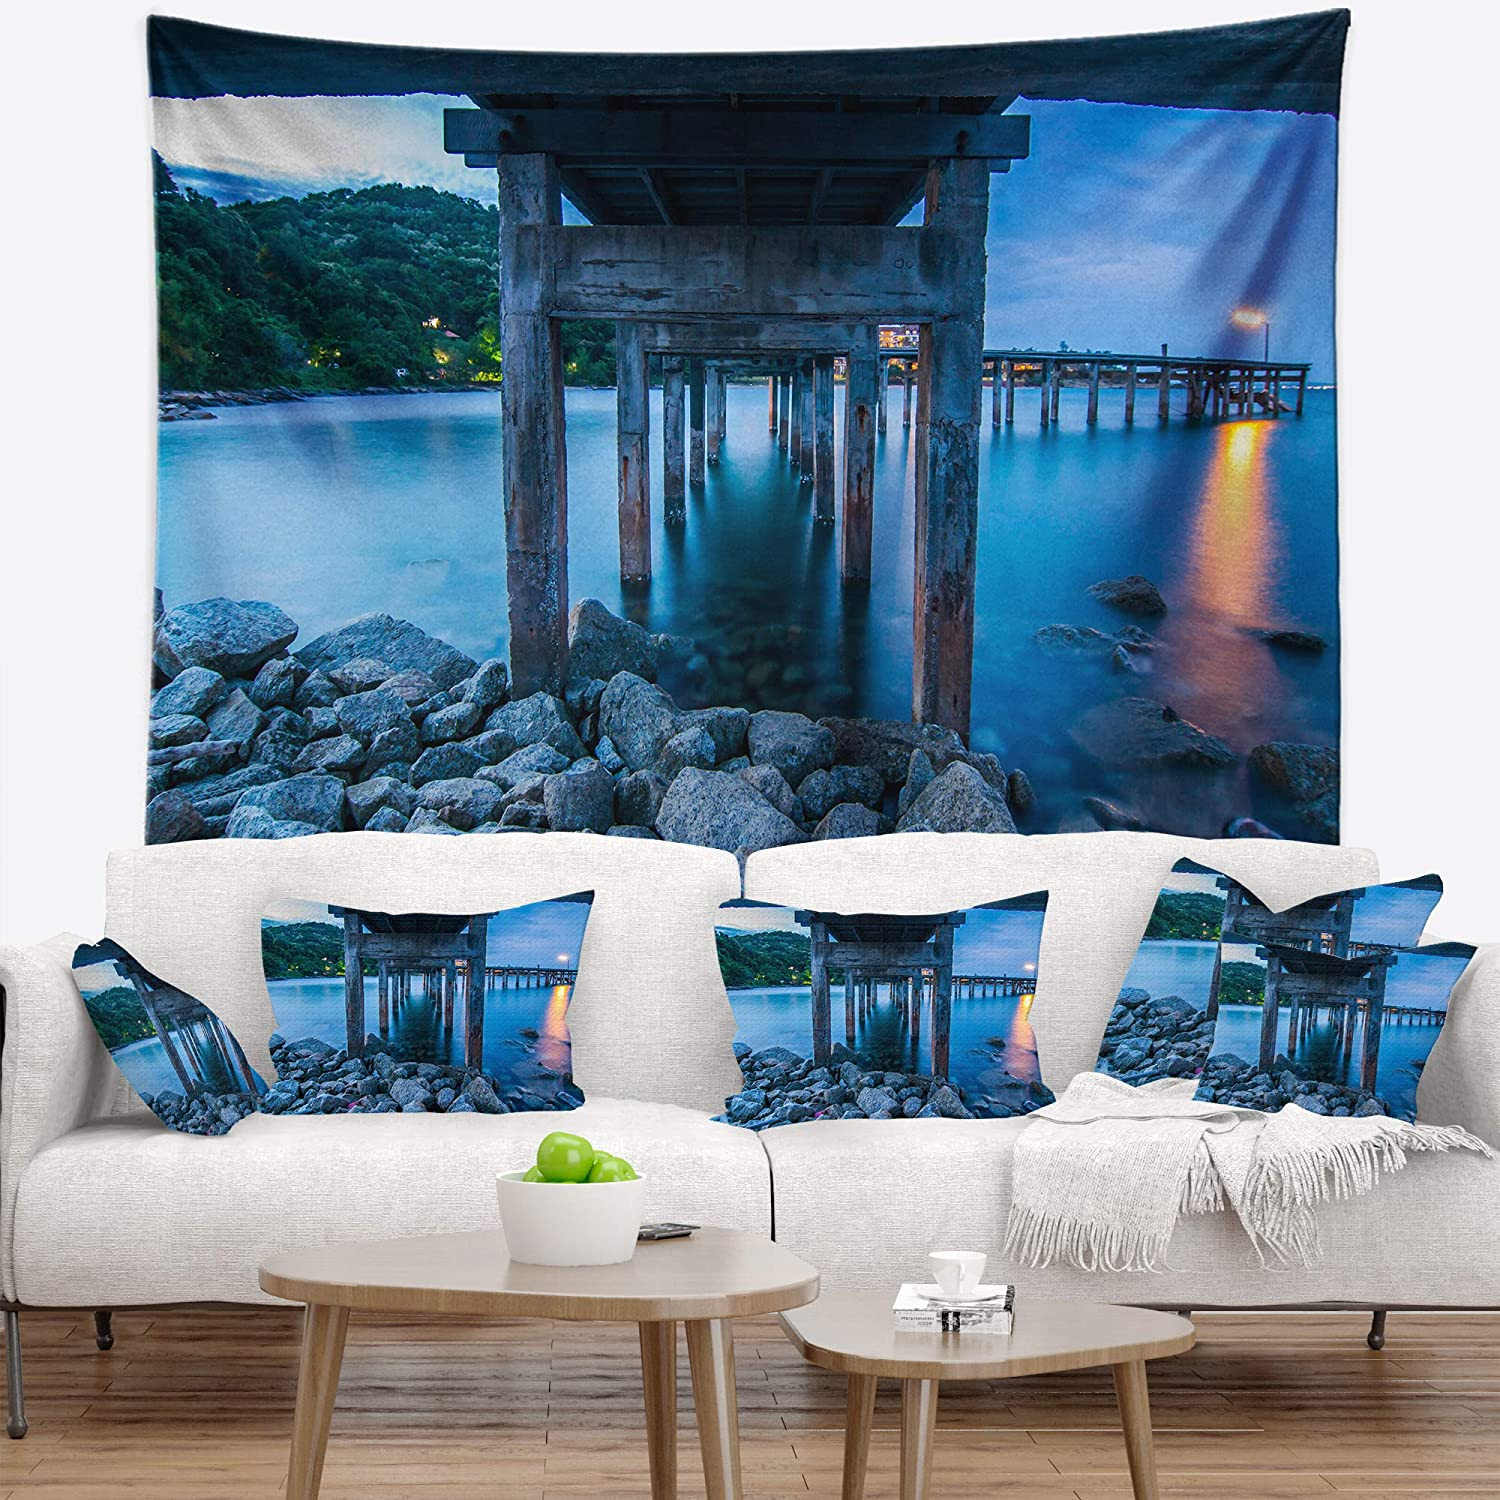 Created On Lightweight Polyester Fabric Designart TAP10558-39-32 Under Wood Twilight Sea Bridge Blanket D/écor Art for Home and Office Wall Tapestry Medium 39 in x 32 in